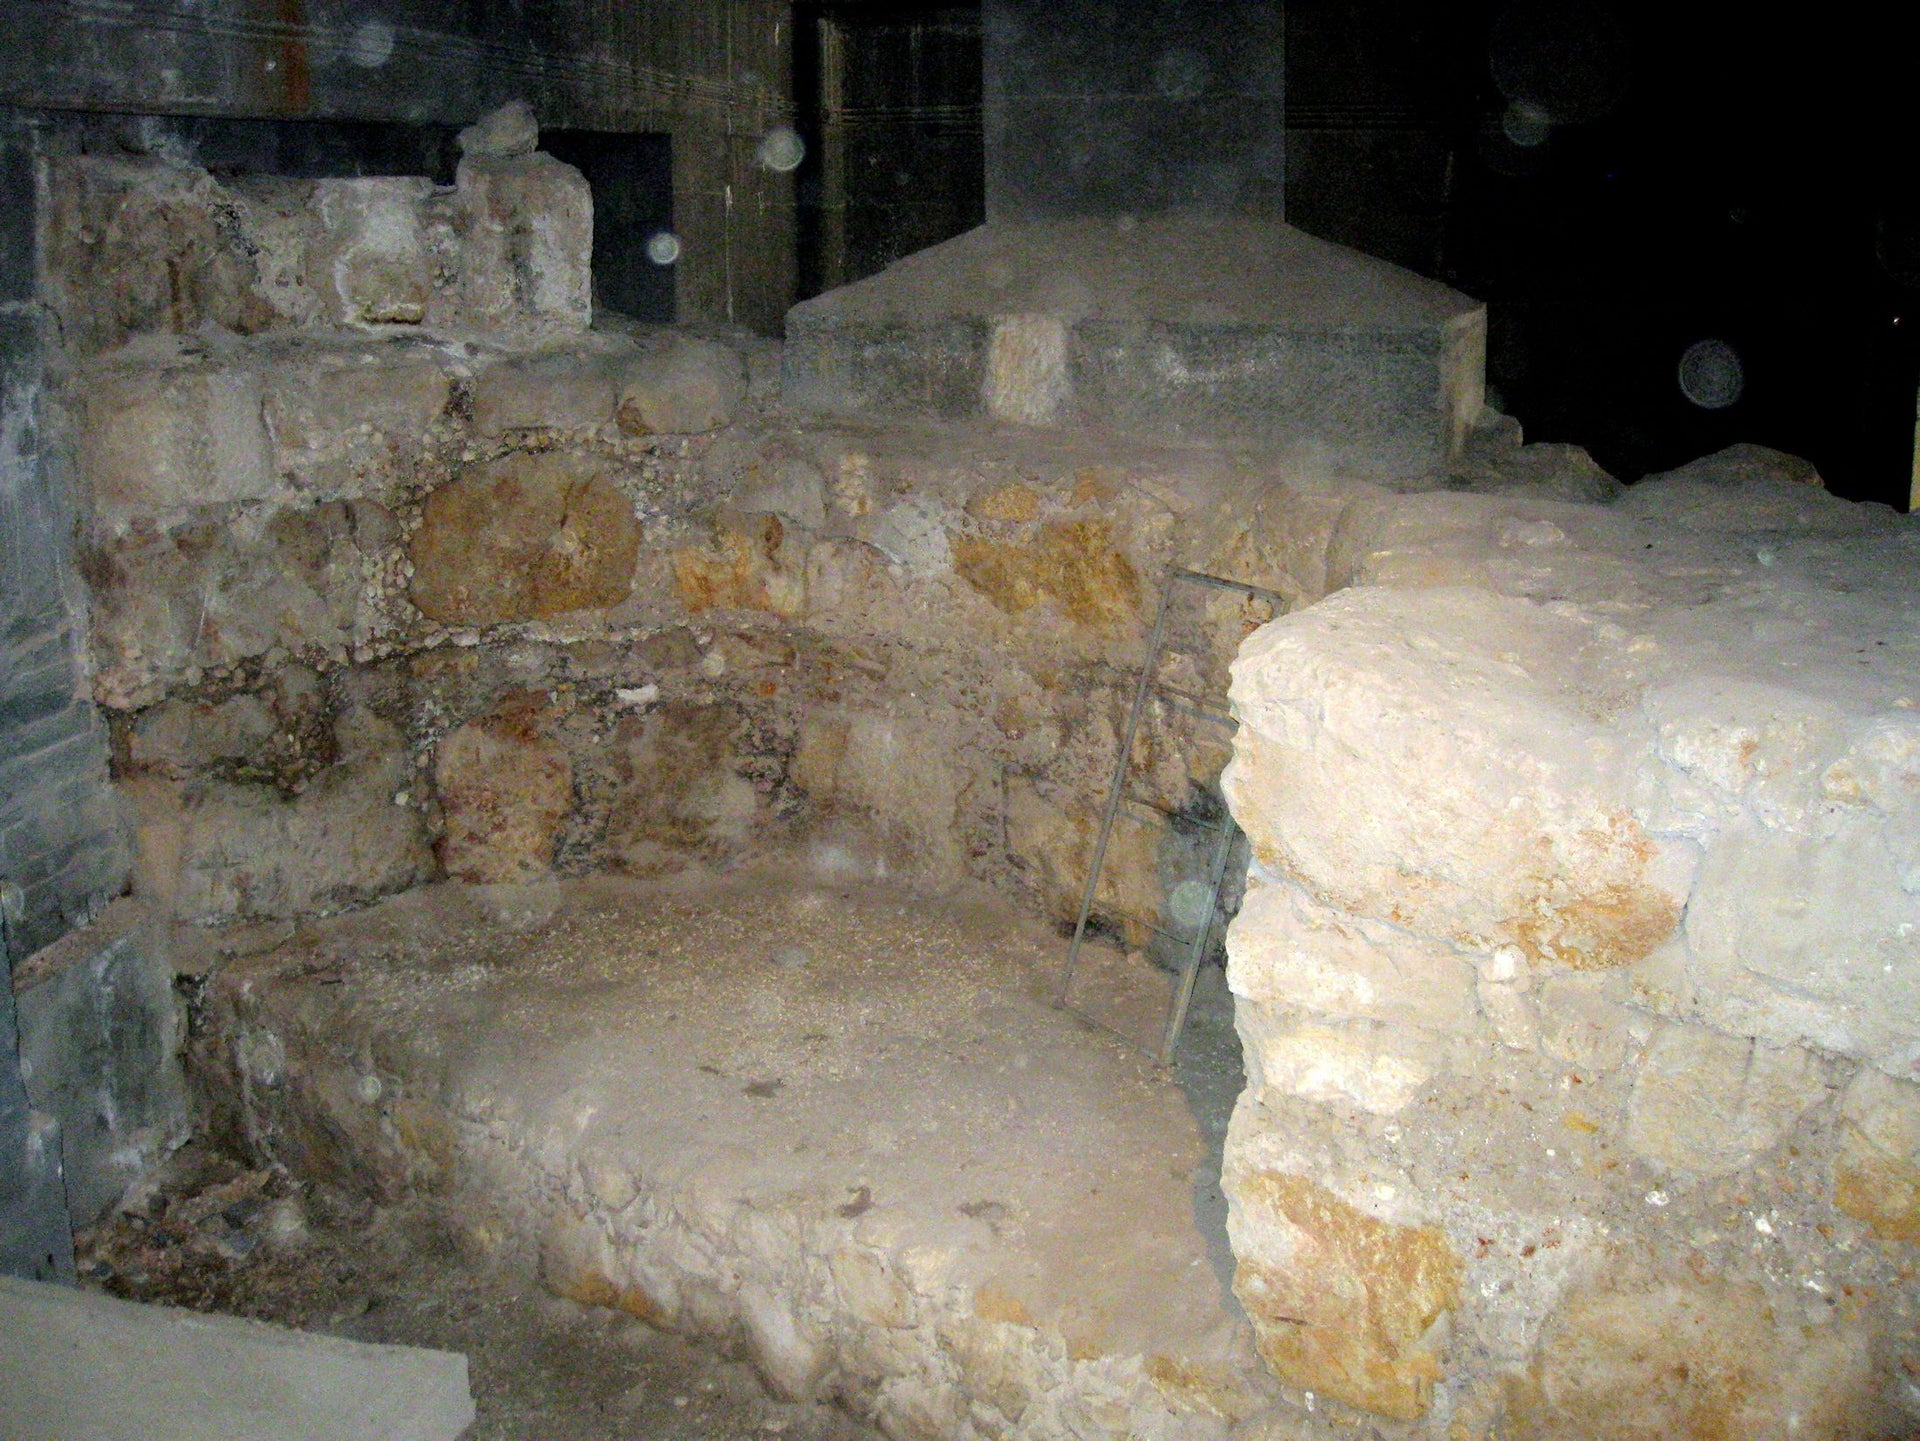 Excavating the New Church of the Theotokos, also known as The Nea Church, which the Holy Roman Emperor Justinian had built in Jerusalem.